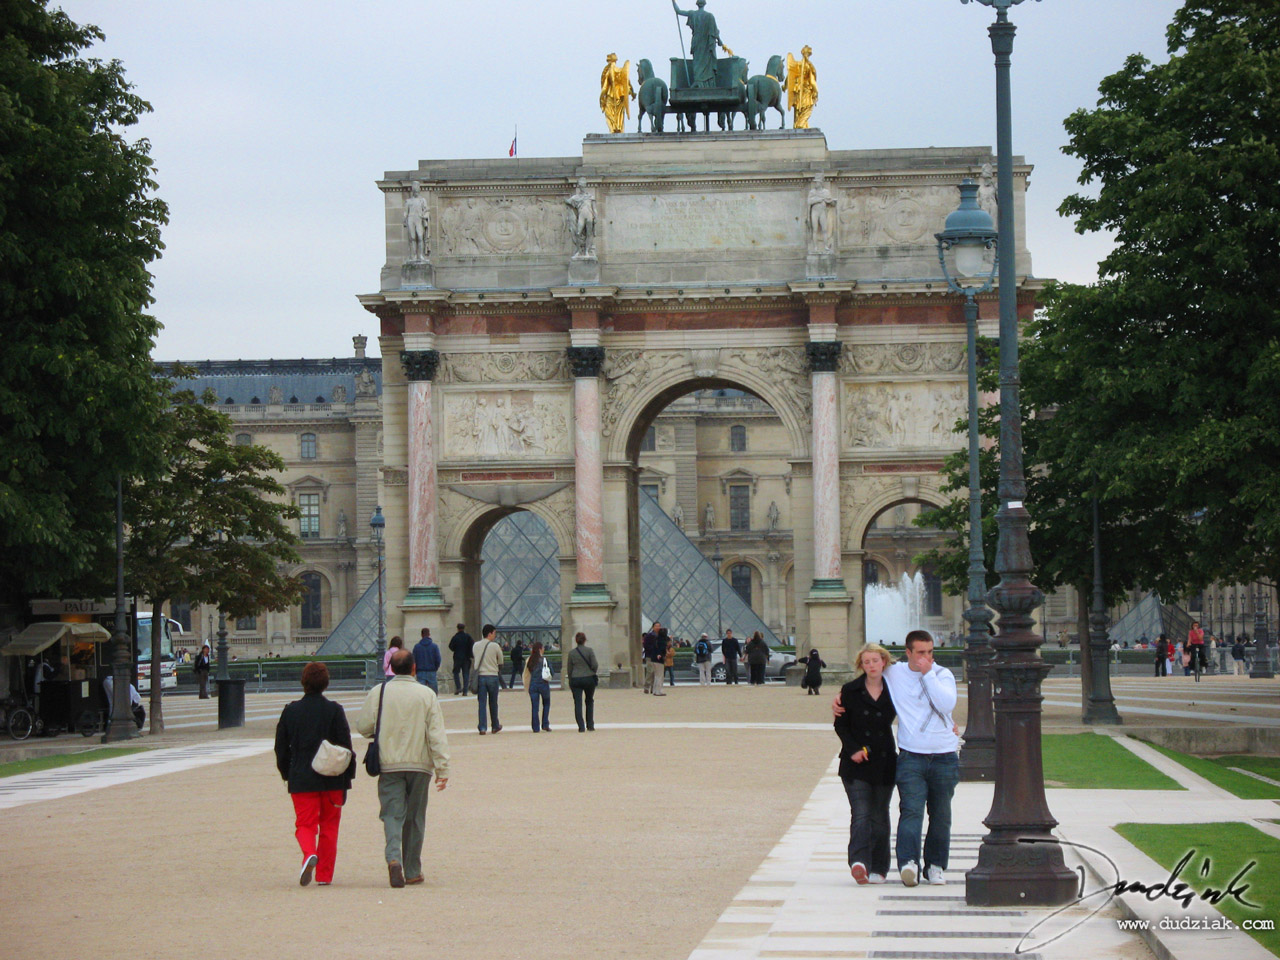 Picture of the Arc de Triomphe du Carrousel in front of the Louvre in Paris, France